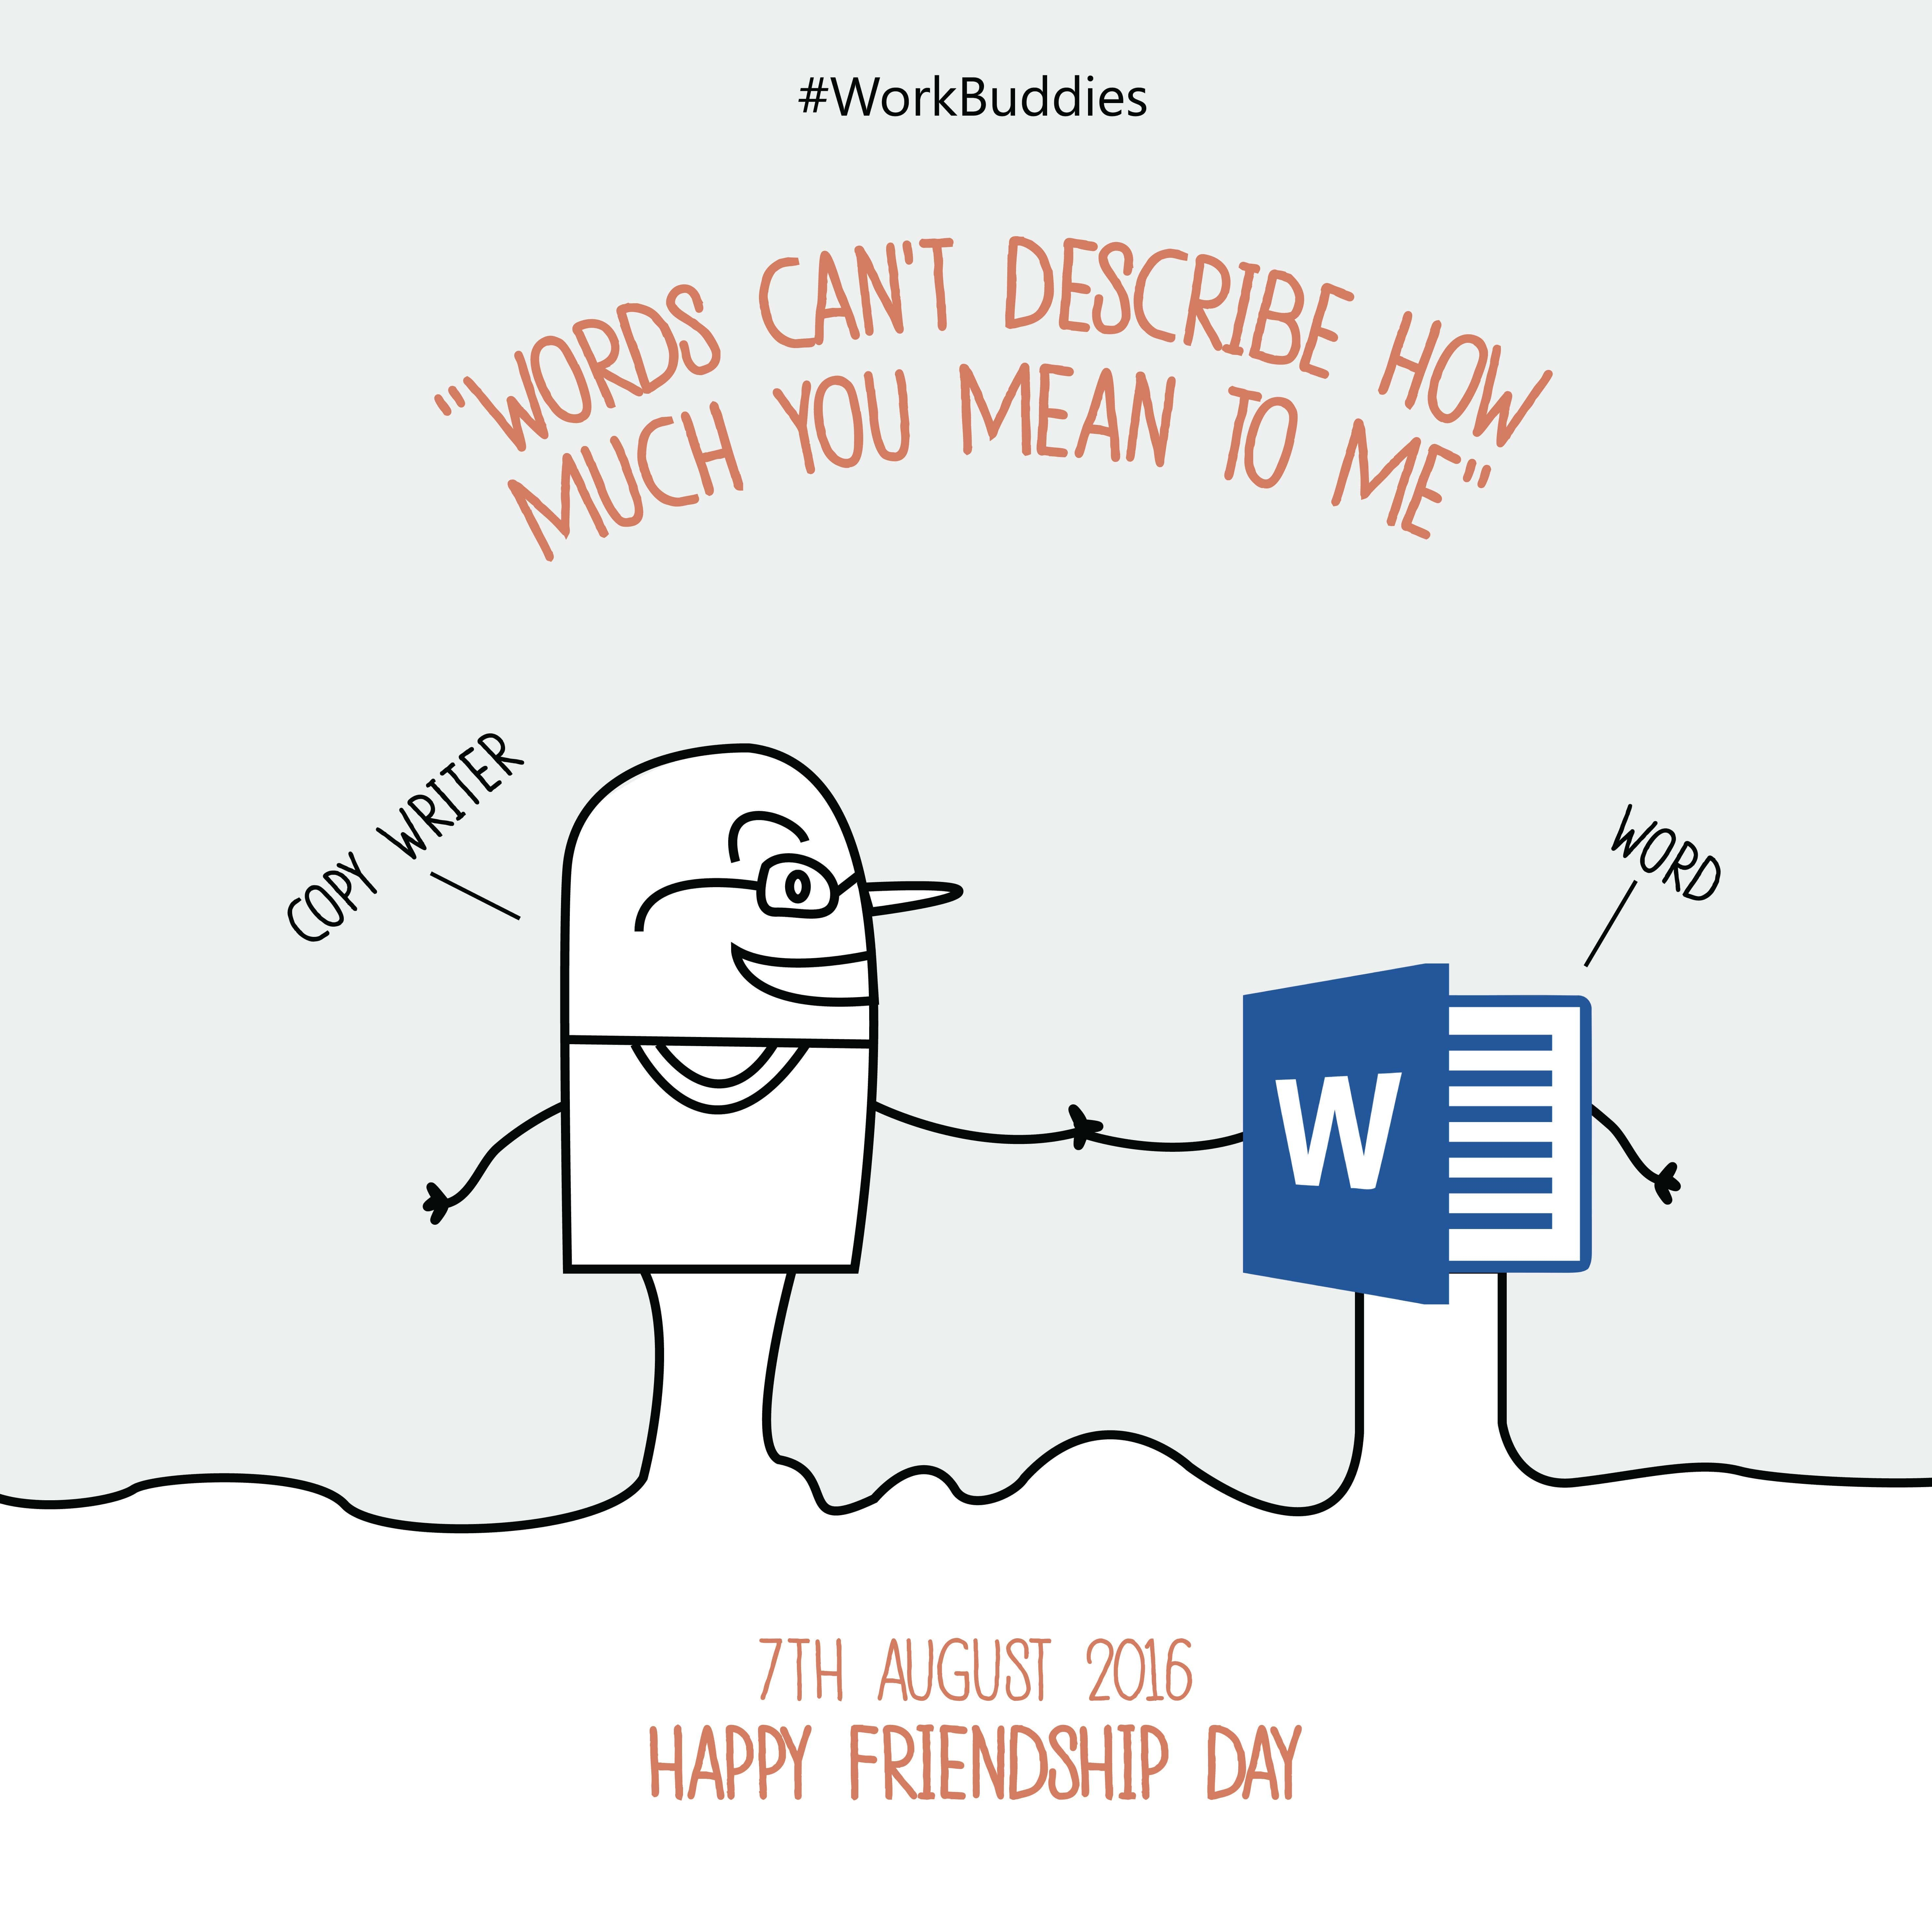 10 Friendship Day Posters That Celebrate Every Millennials Close